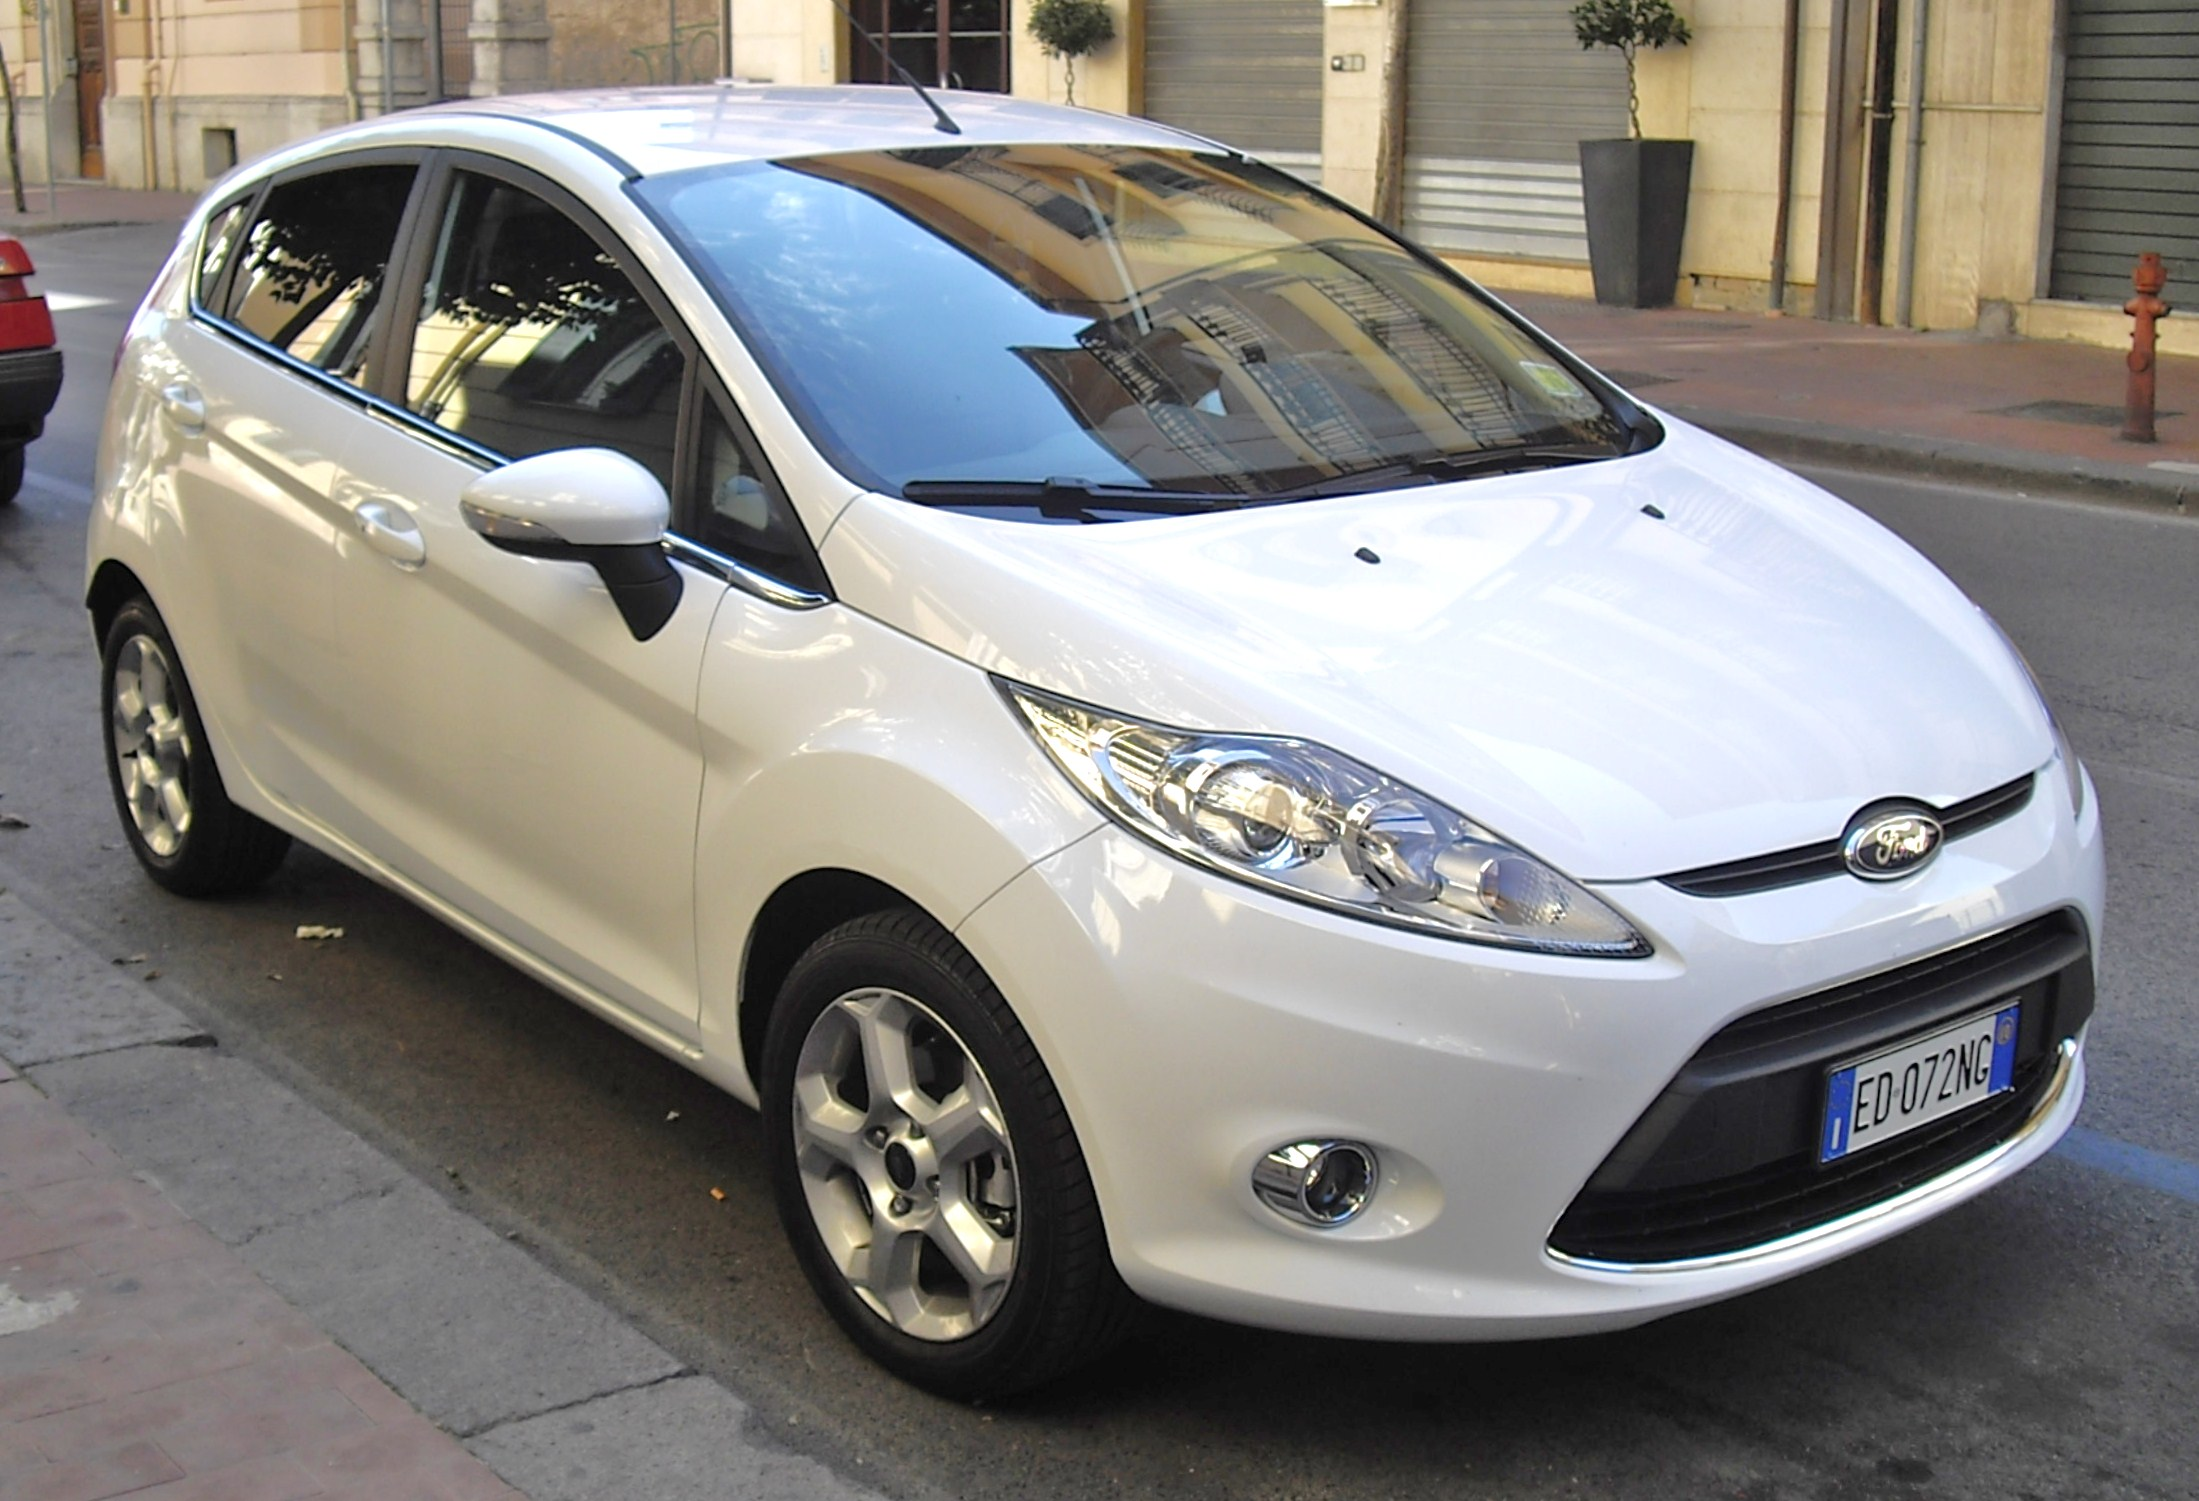 Ford Fiesta 1.4 TDCI front